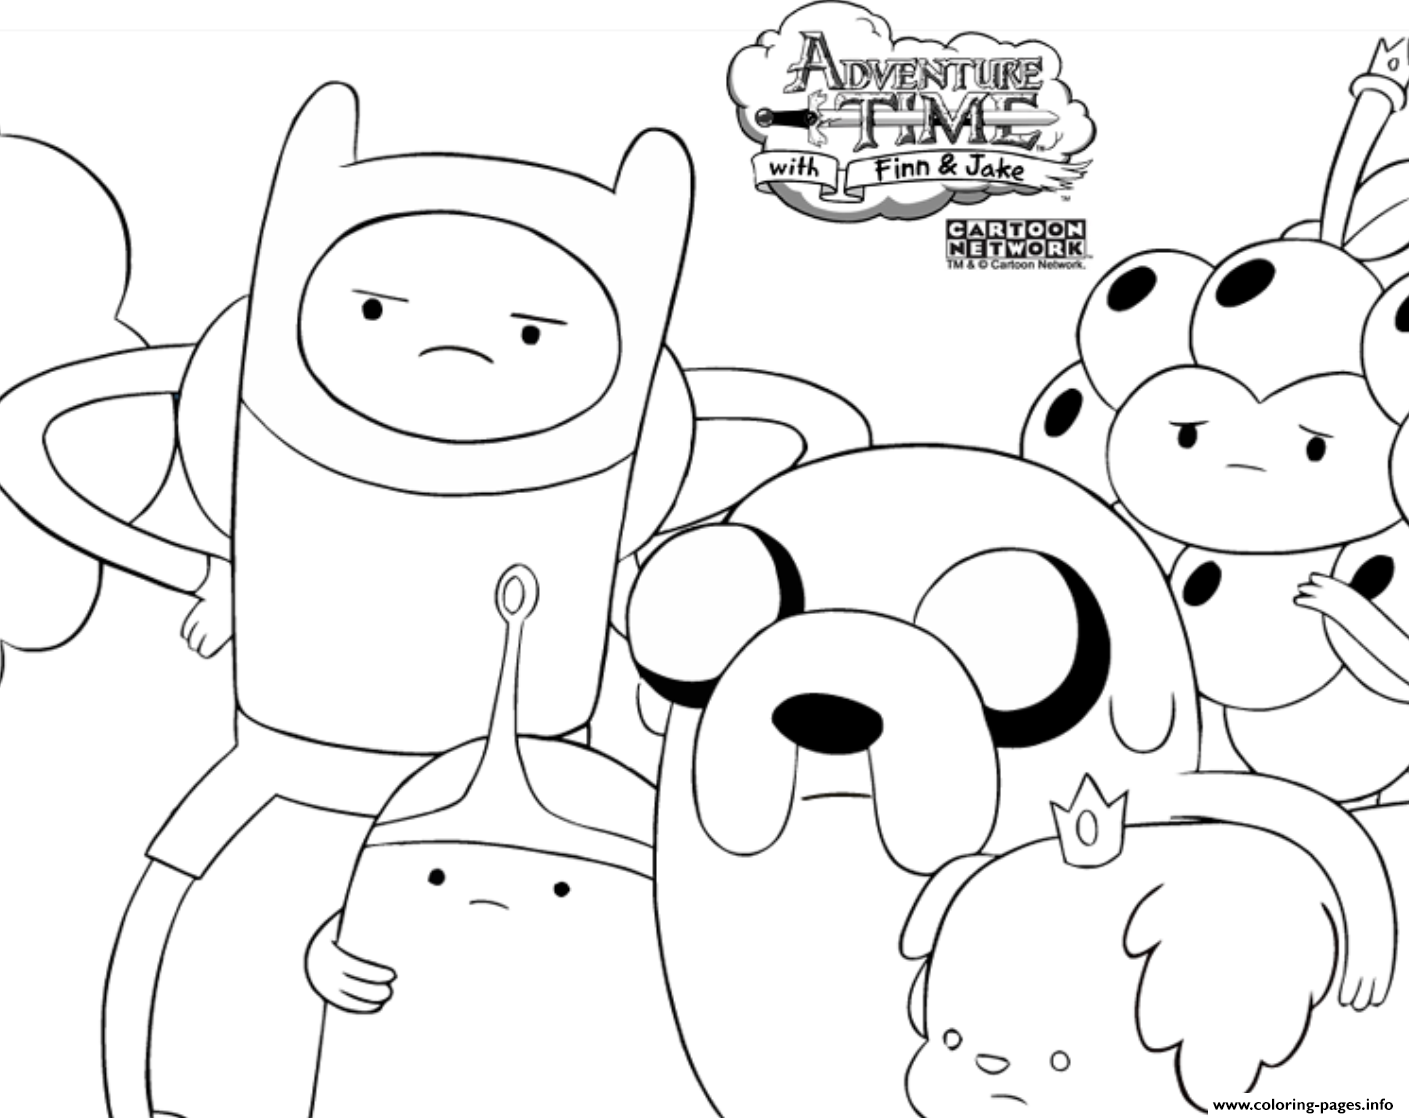 Adventure Time S Finn01fb Coloring Pages Printable